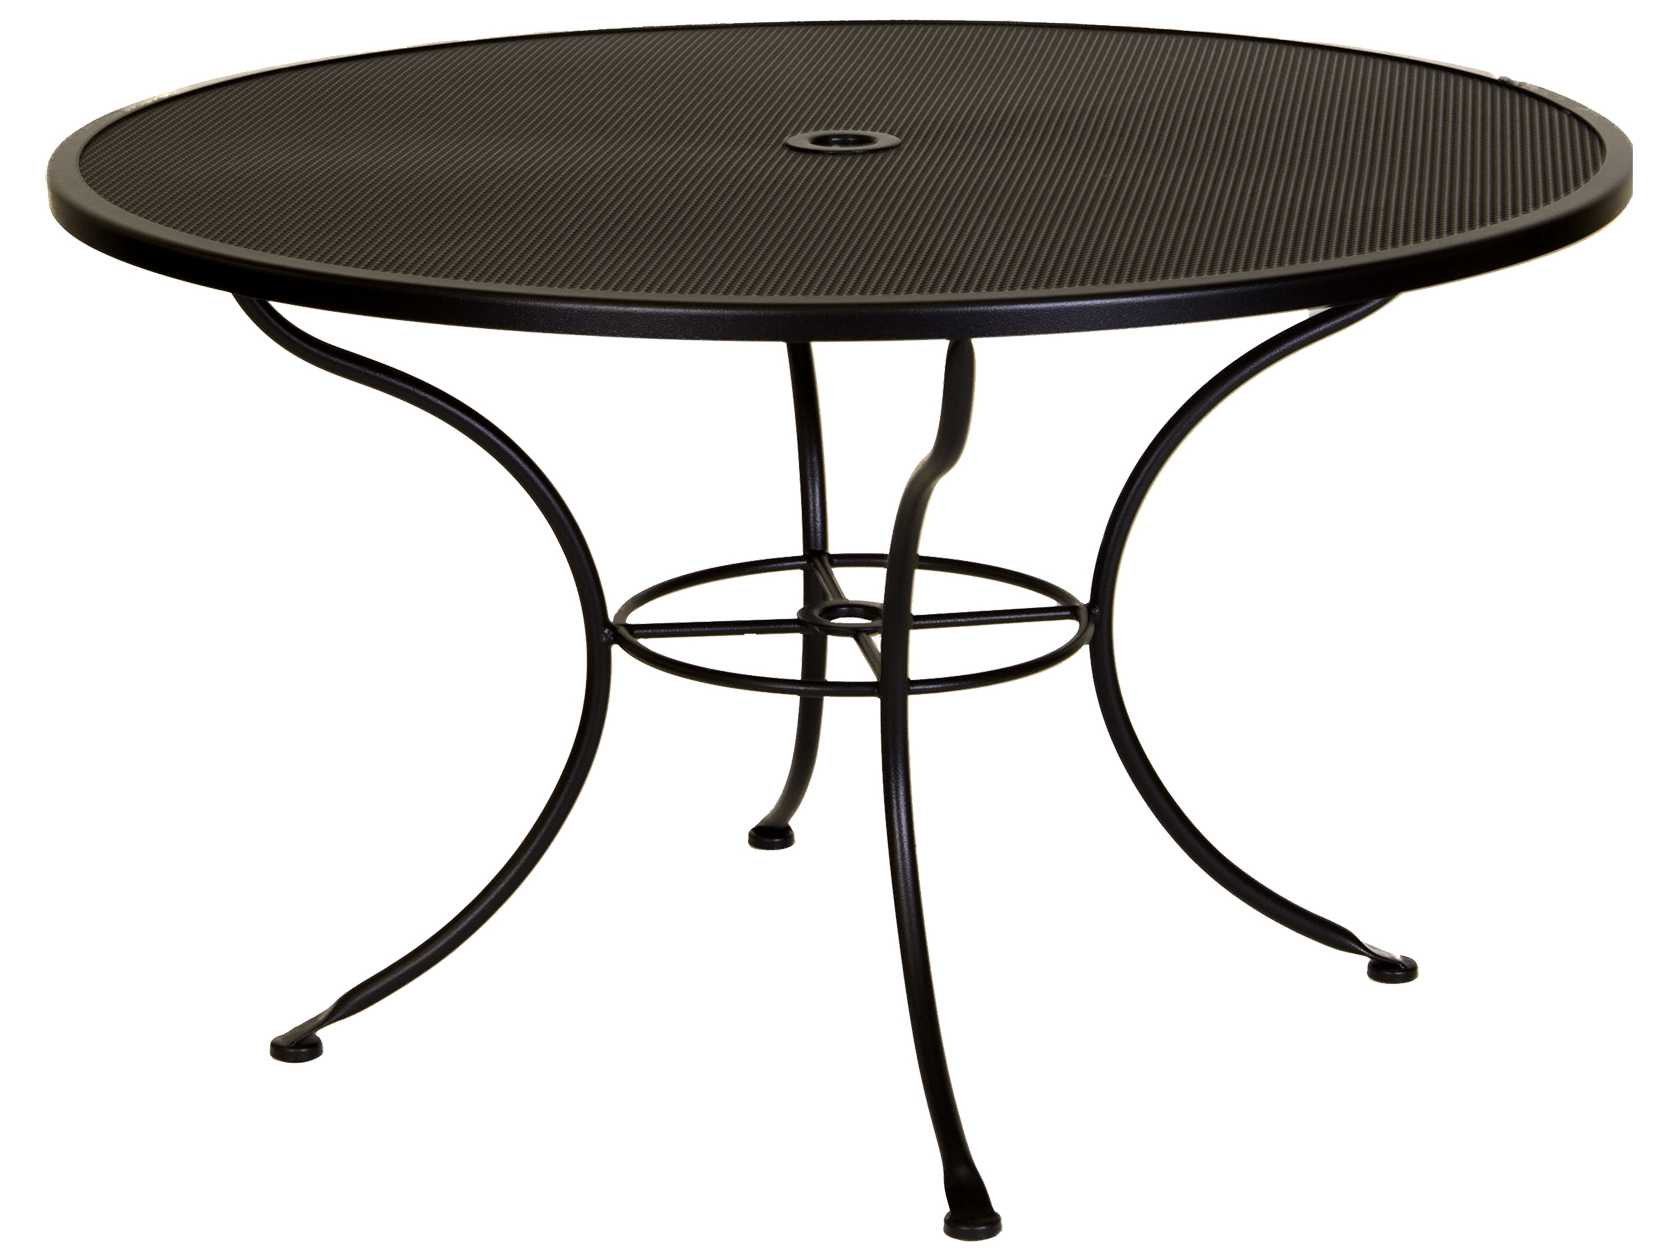 Ow Lee Mesh Wrought Iron 48 Round Dining Table With